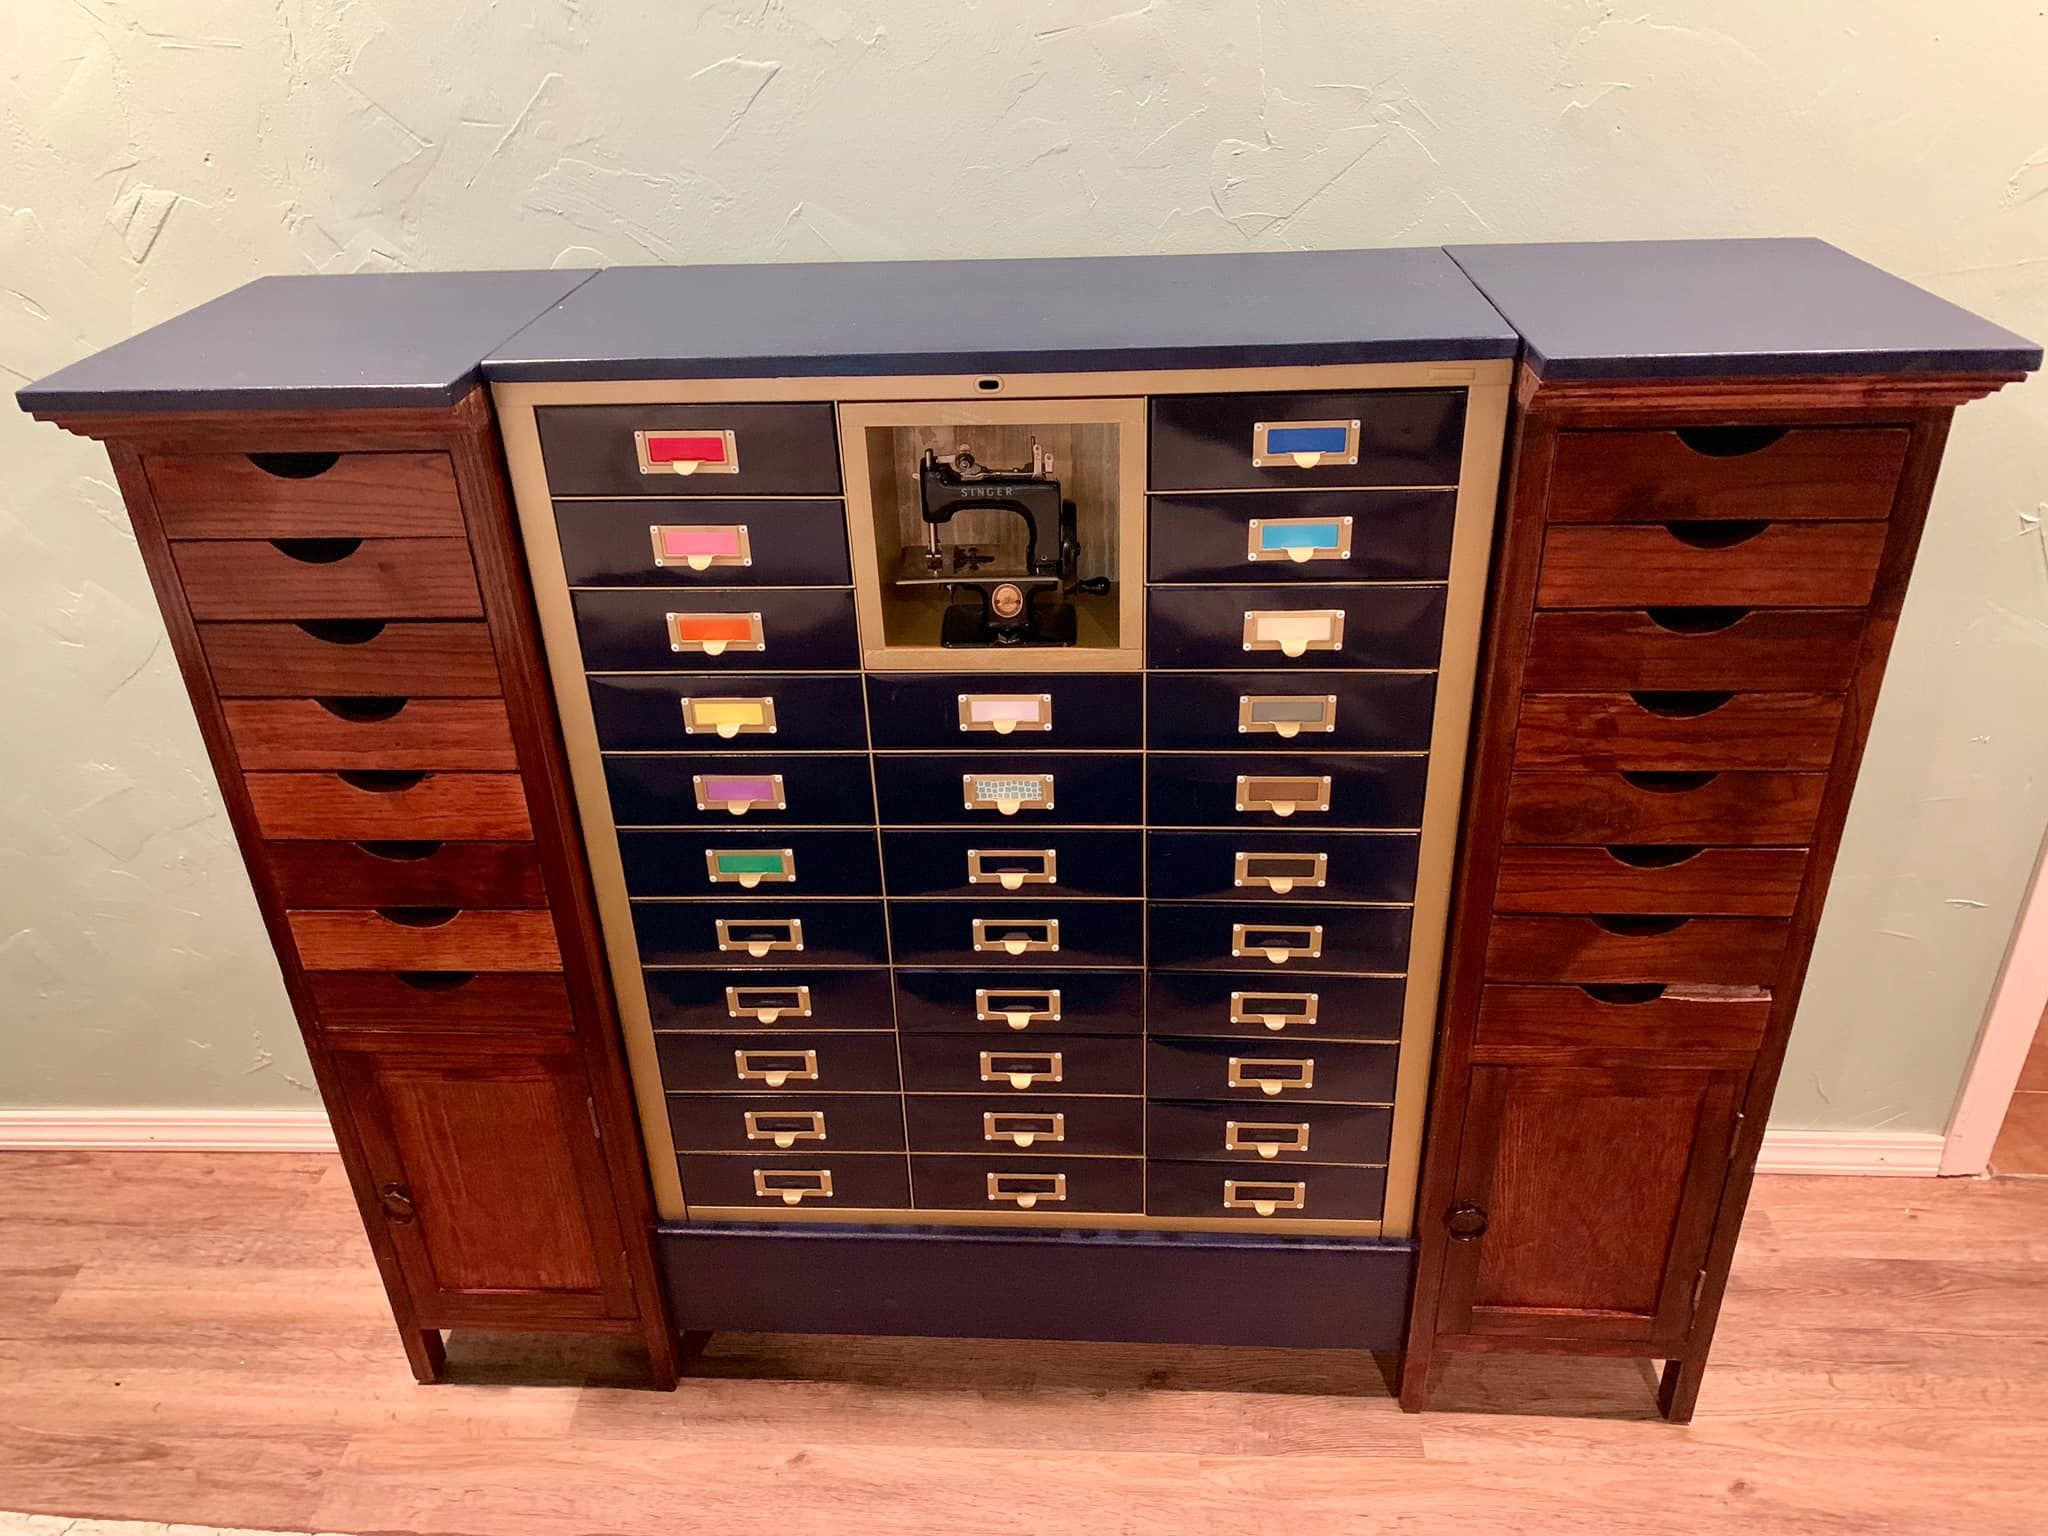 Storage Piece Made From Thrifted Old File Cabinets With A